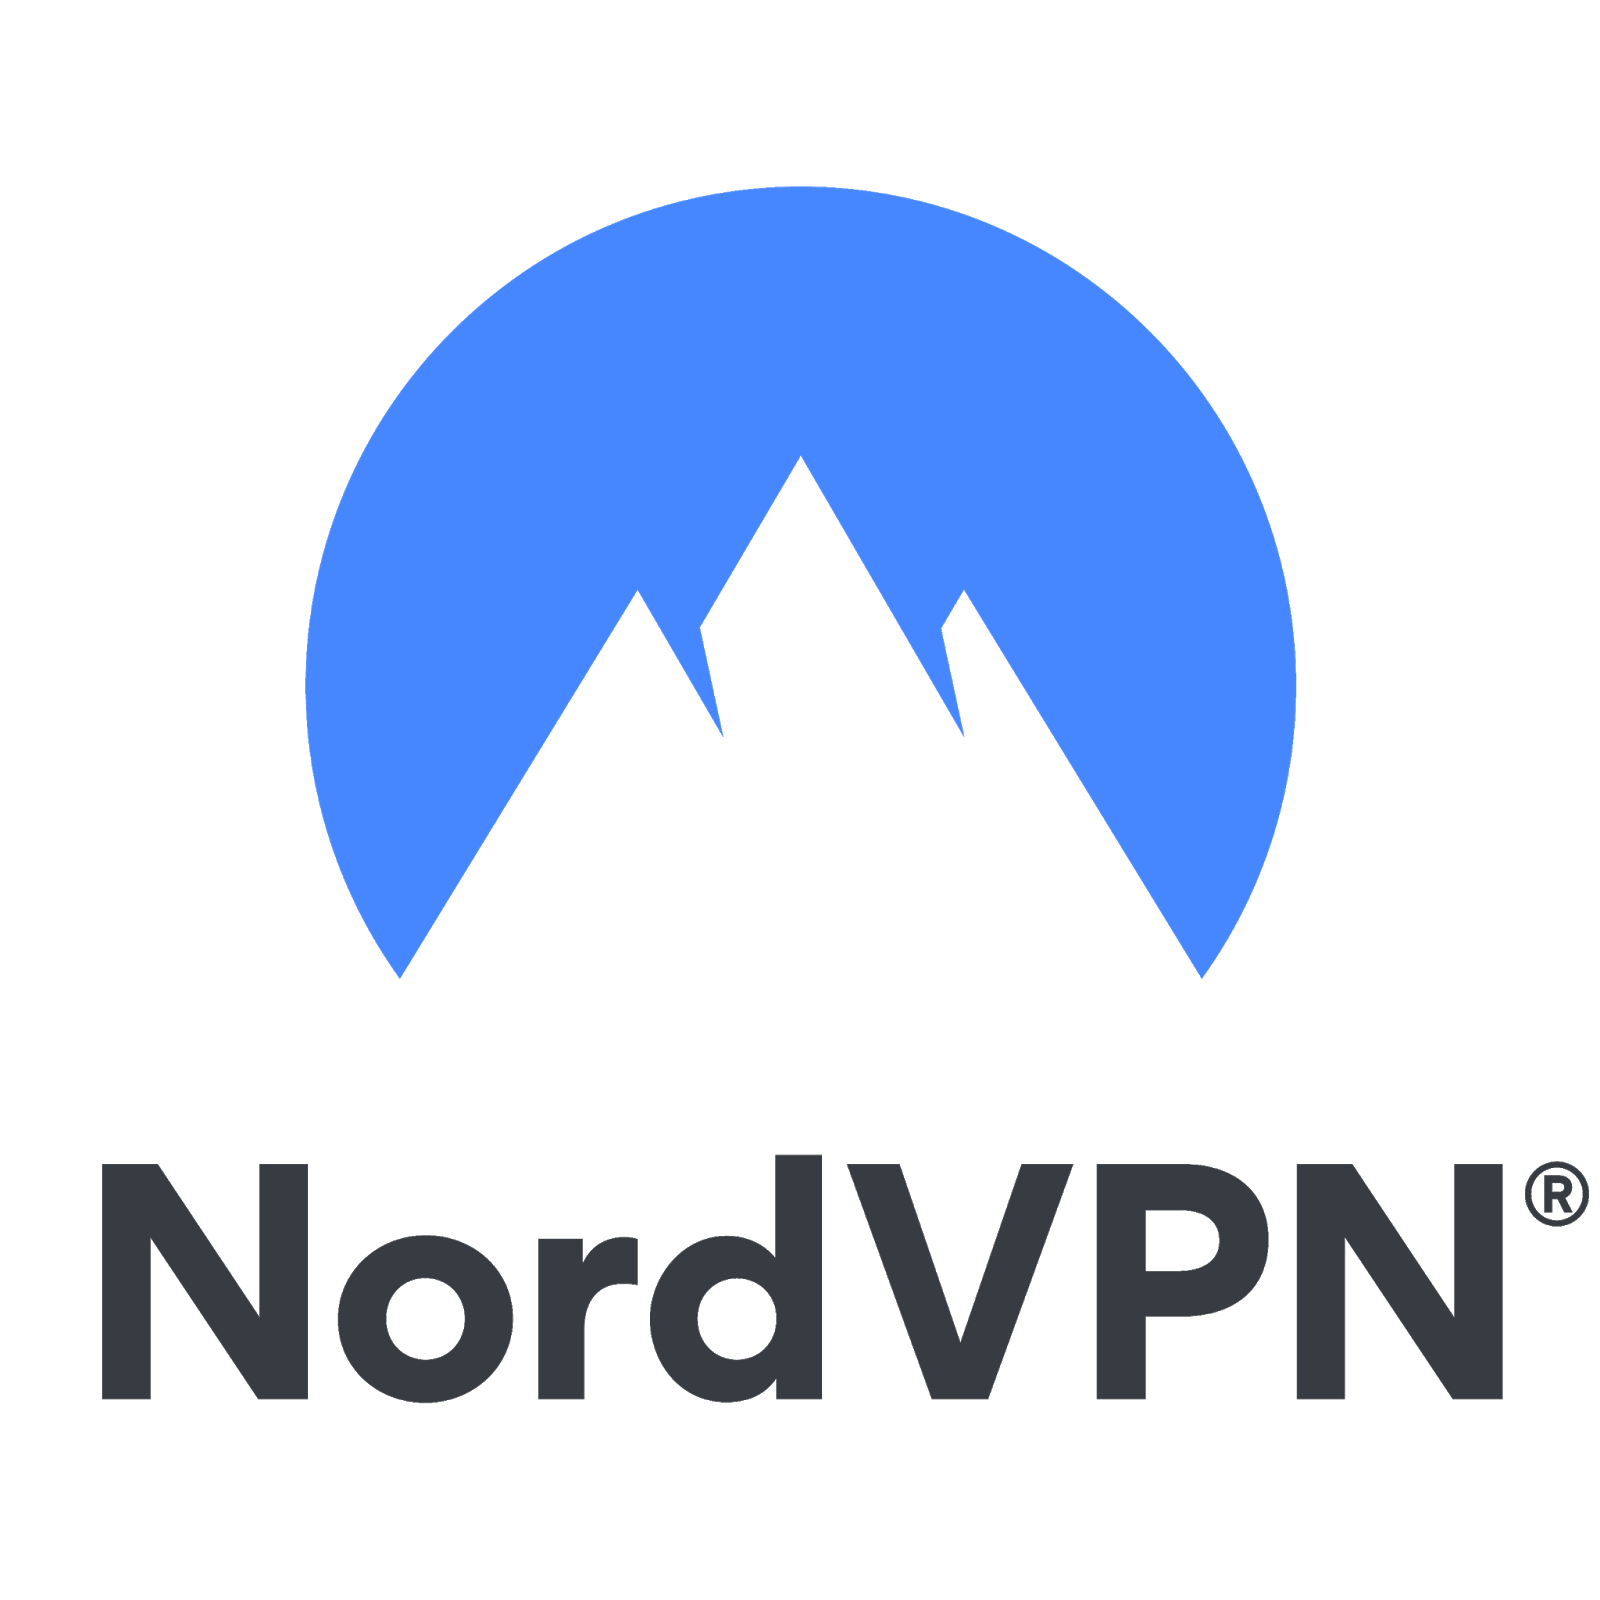 NordVPN Crack 6.35.9.0 With License Key Latest 2021 Download